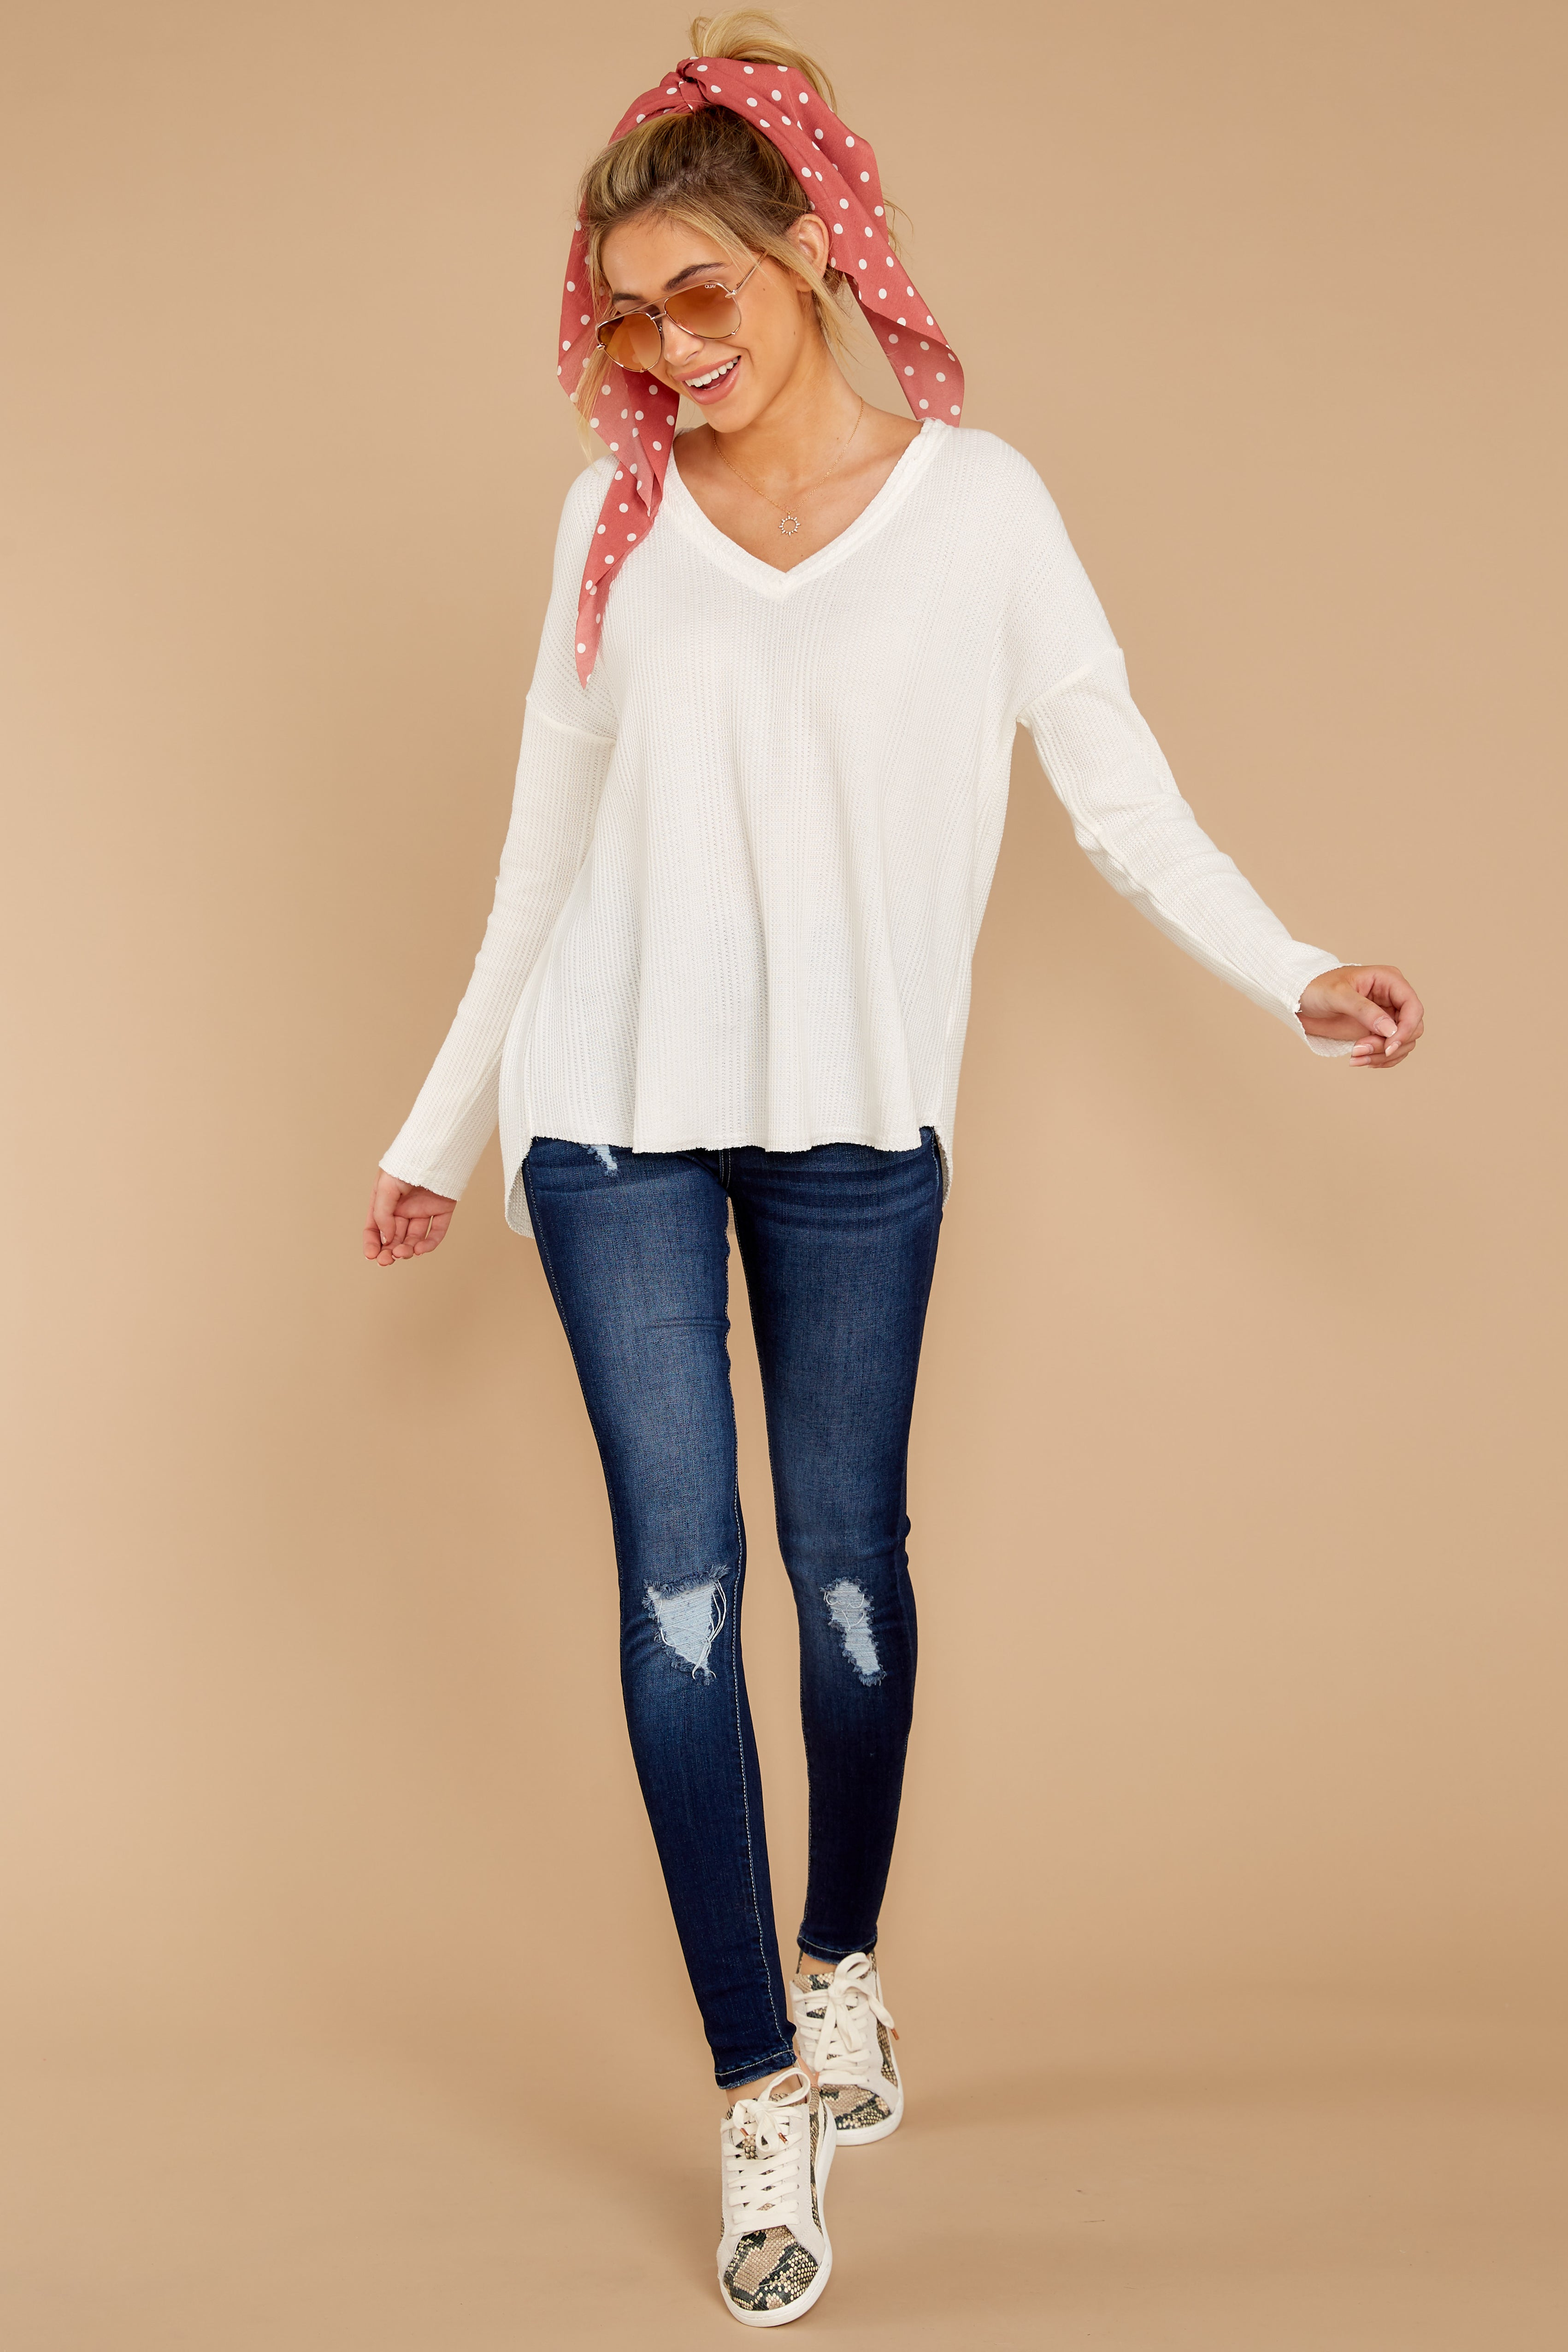 1 Pep Talks White Waffle Knit Top at reddressboutique.com